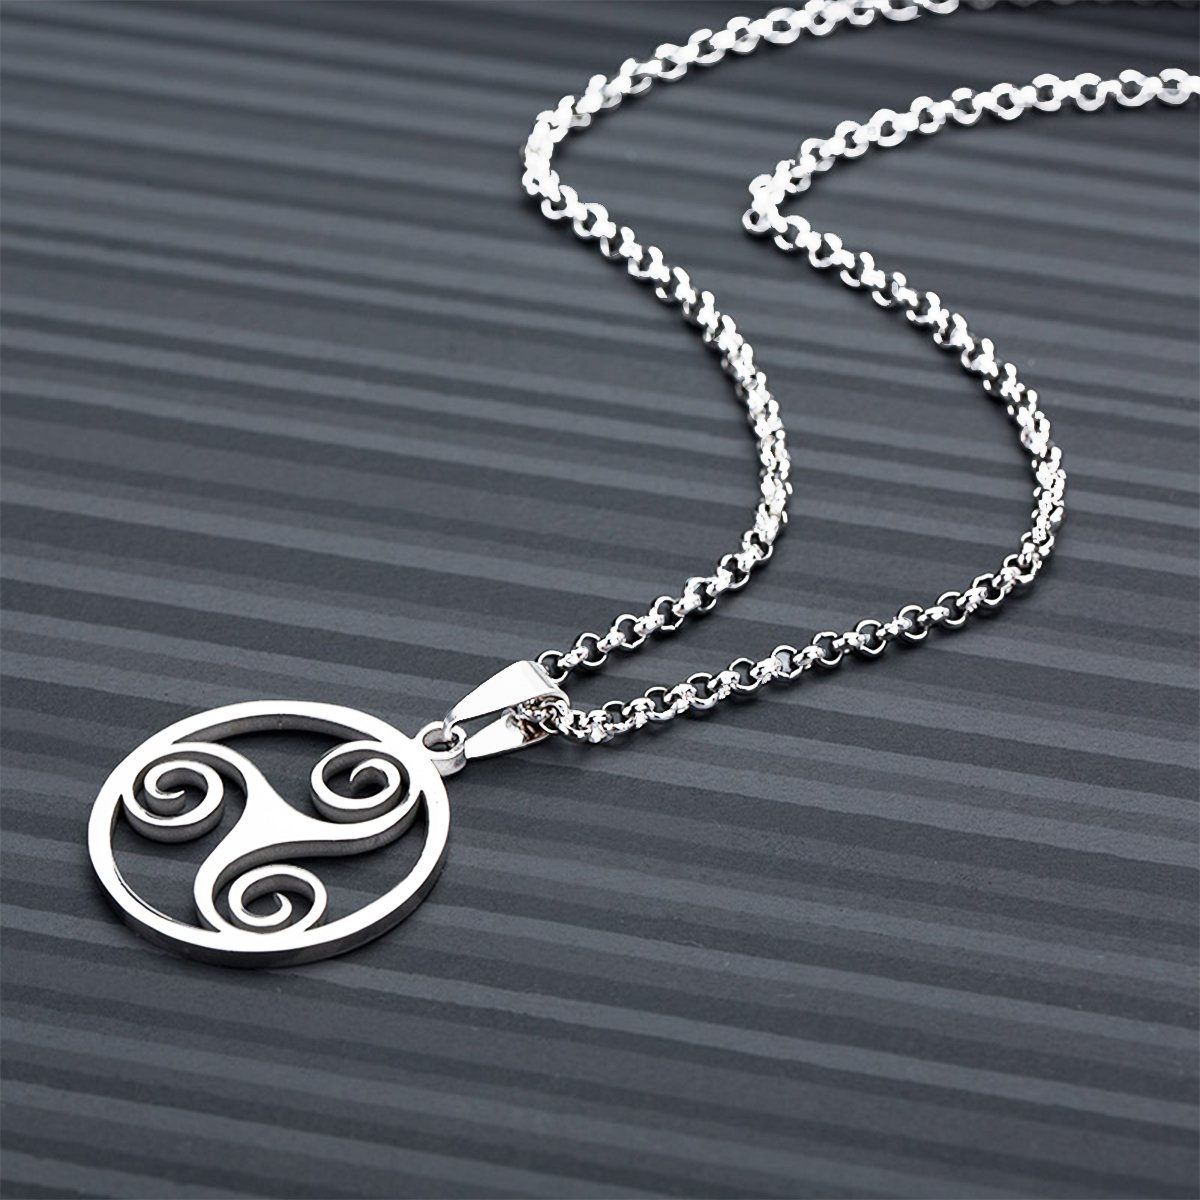 Amazon Handicraft Stainless Steel Viking Triskele Necklaces